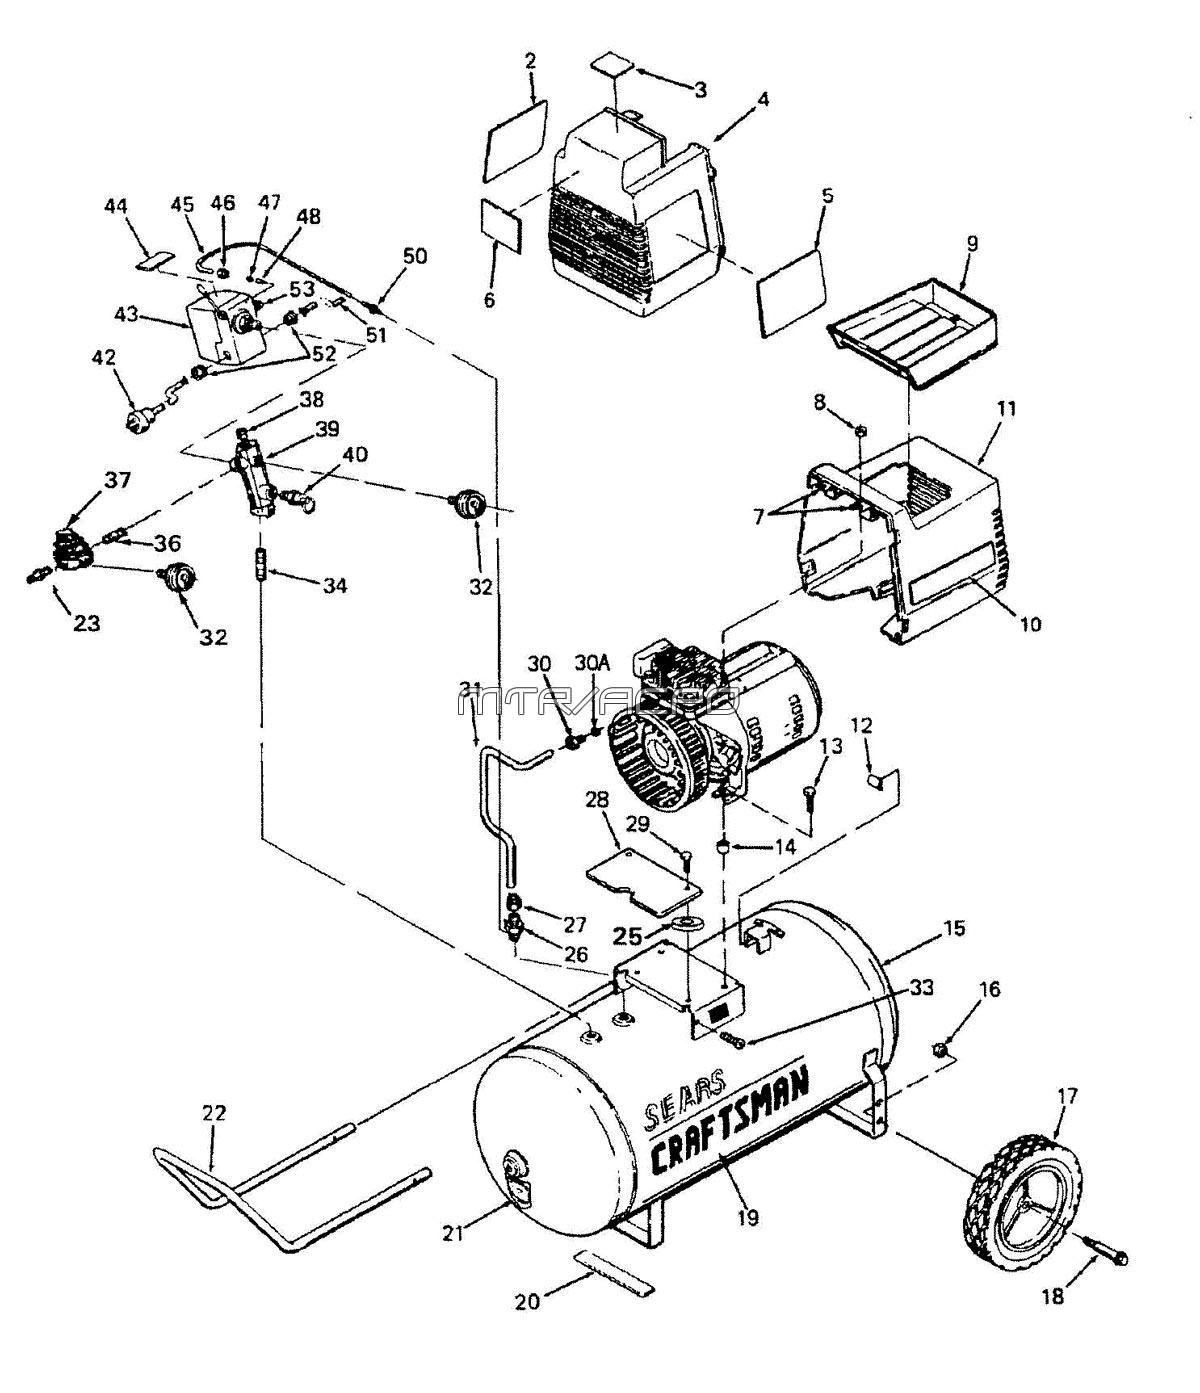 919.155731 - Sears Craftsman schematic